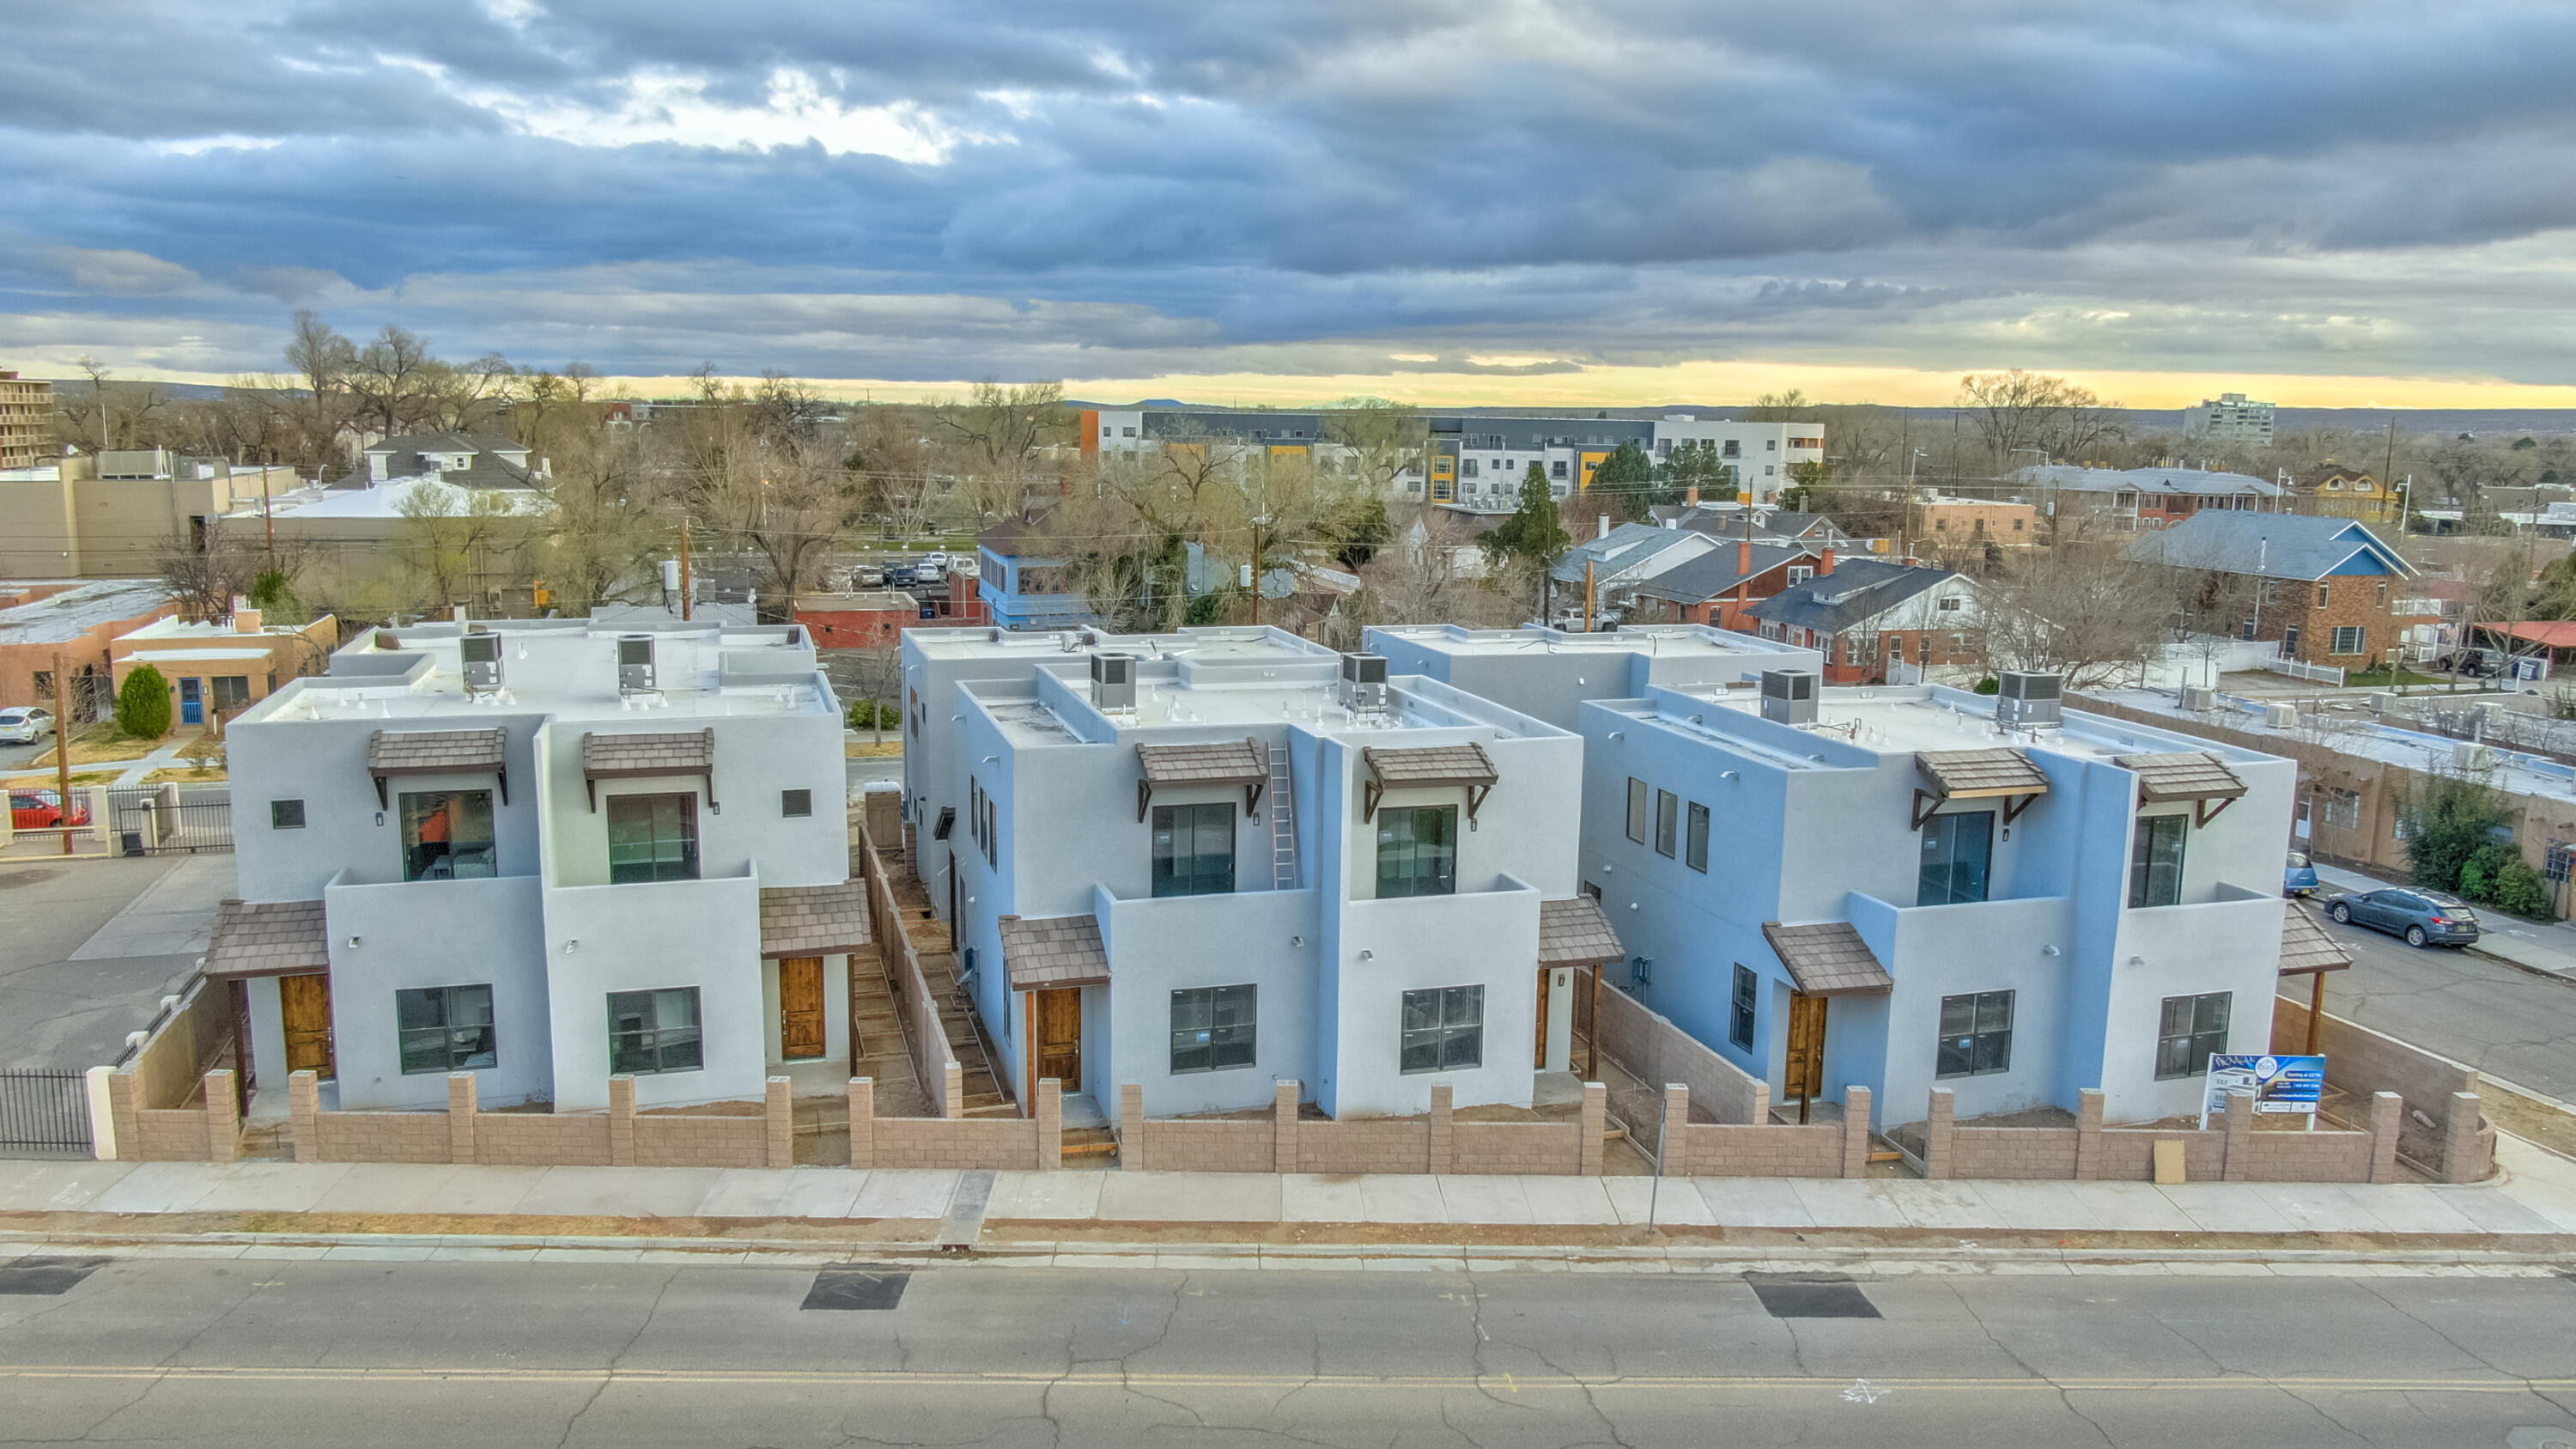 Ibiza Townhomes! Brand New Custom Built Two Story Townhomes, located in the trendy downtown ABQ! Location, Location, Location! These amazing homes are built with custom flooring, tall ceilings, full overlay cabinetry and granite counter tops. The 4 bedroom design includes 4 full bathroom, plus a 1/2 bath for guests. Featuring a detached garage with full studio above with kitchen, bathroom and laundry area! Custom touches in every bathroom like tub to ceiling 3-D style tile, furniture style vanities and tankless water heaters, plus AC combo units for you hot and cold needs. Enjoy the large finished double car garage with plenty of parking on the oversized drive pad.